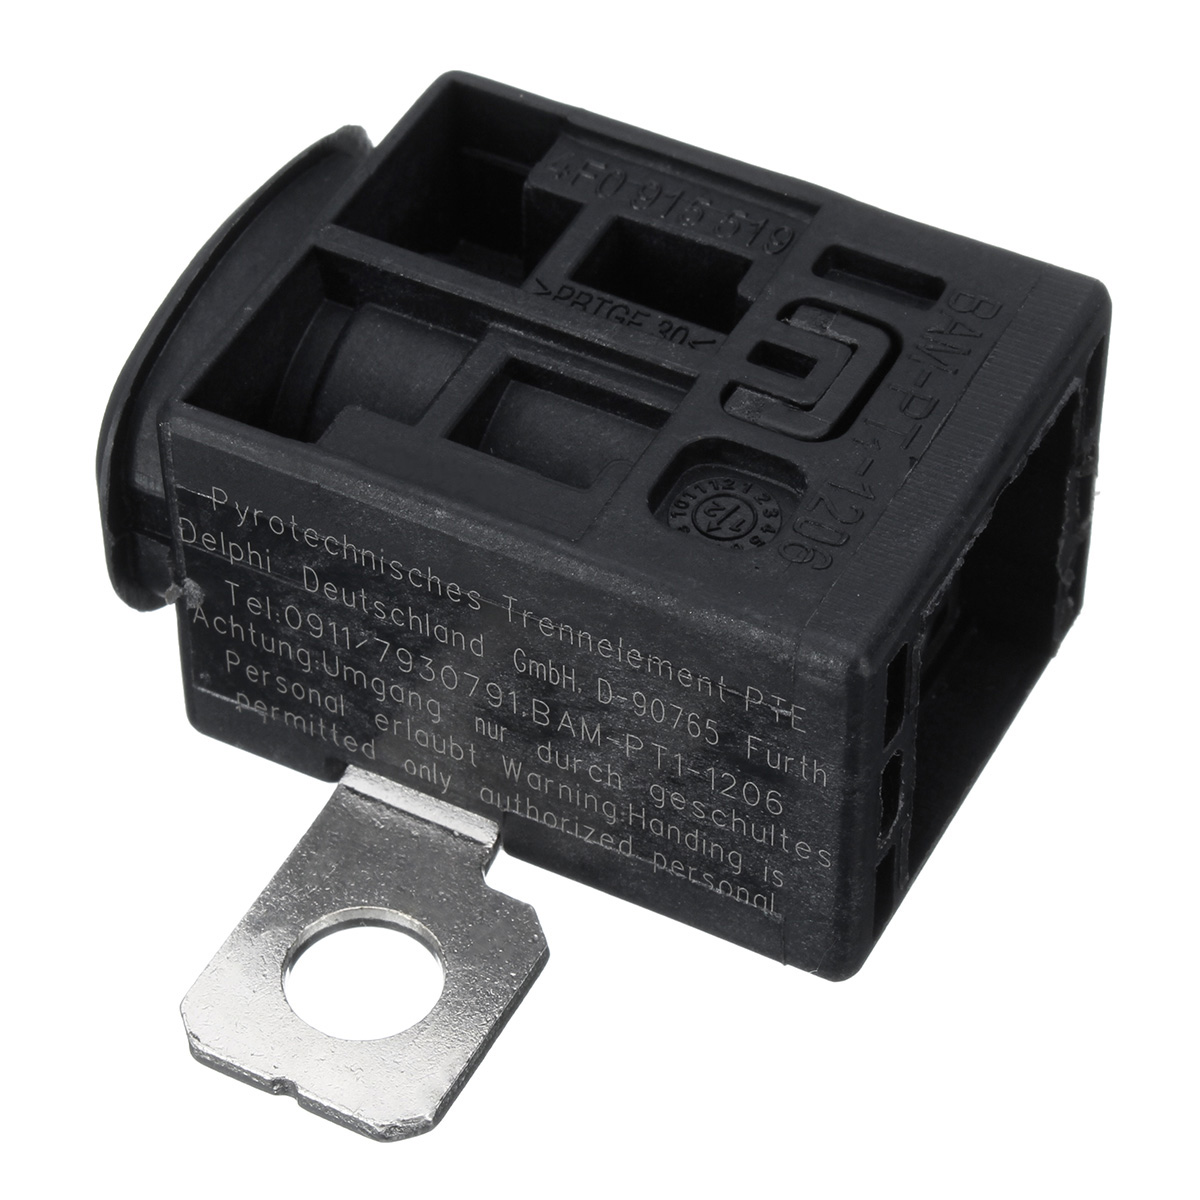 4f0915519 Battery Fuse Box Cut Off Overload Protection Trip For Audi A3 Interior Q5 A5 A7 A6 Vw Skoda In Fuses From Automobiles Motorcycles On